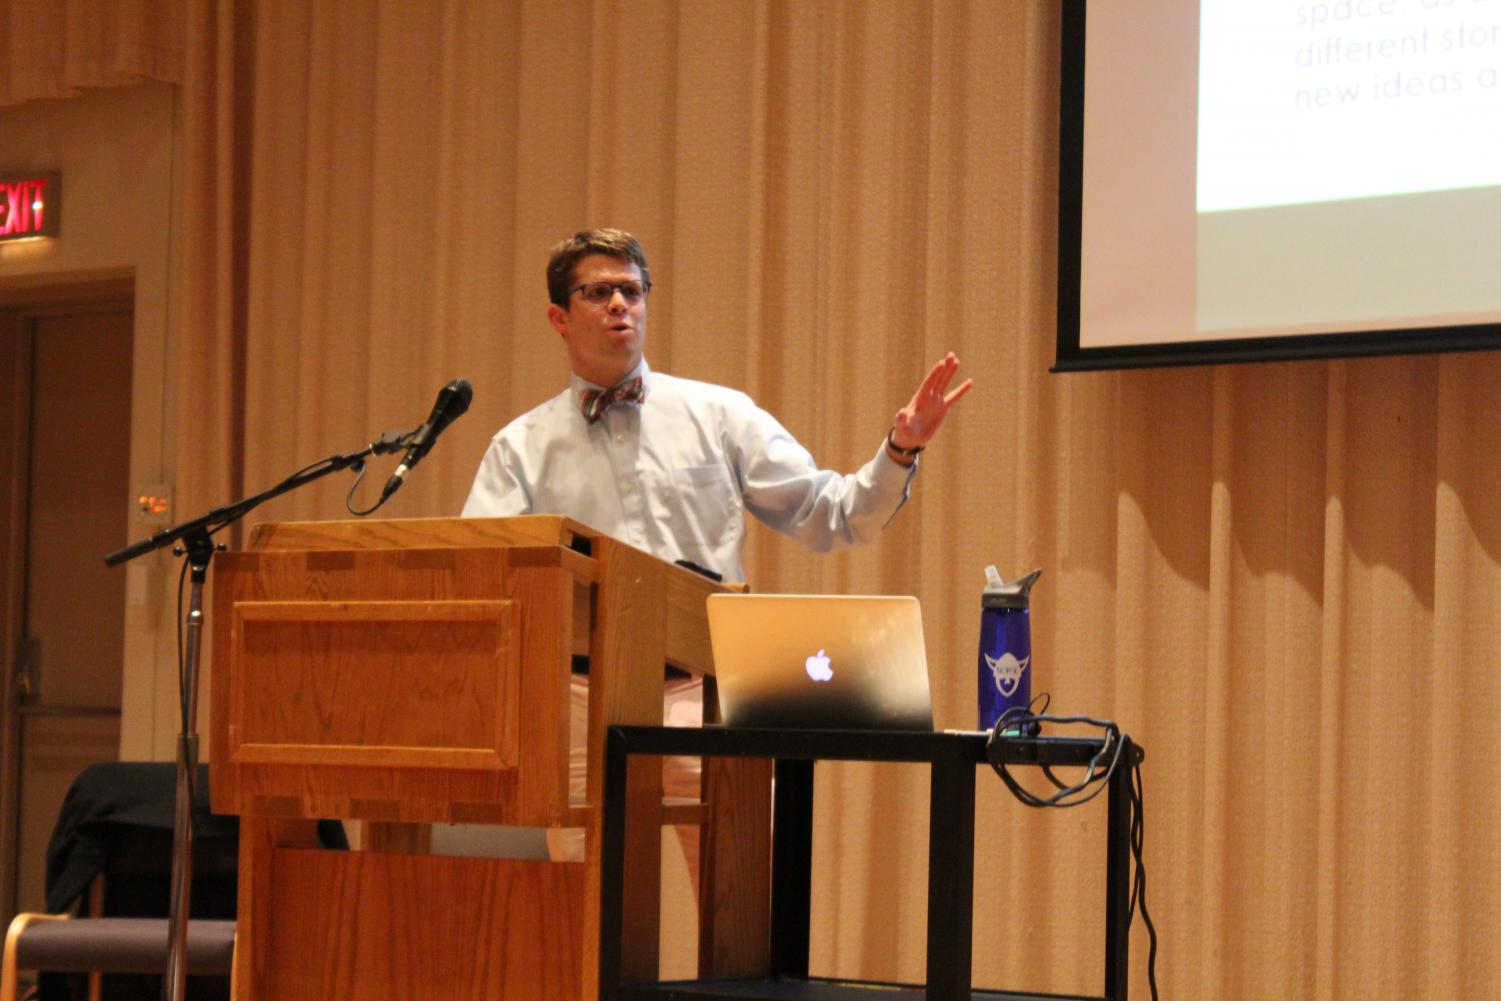 Visiting Assistant Professor of Religion James Hoke spoke on queerness and how it relates to